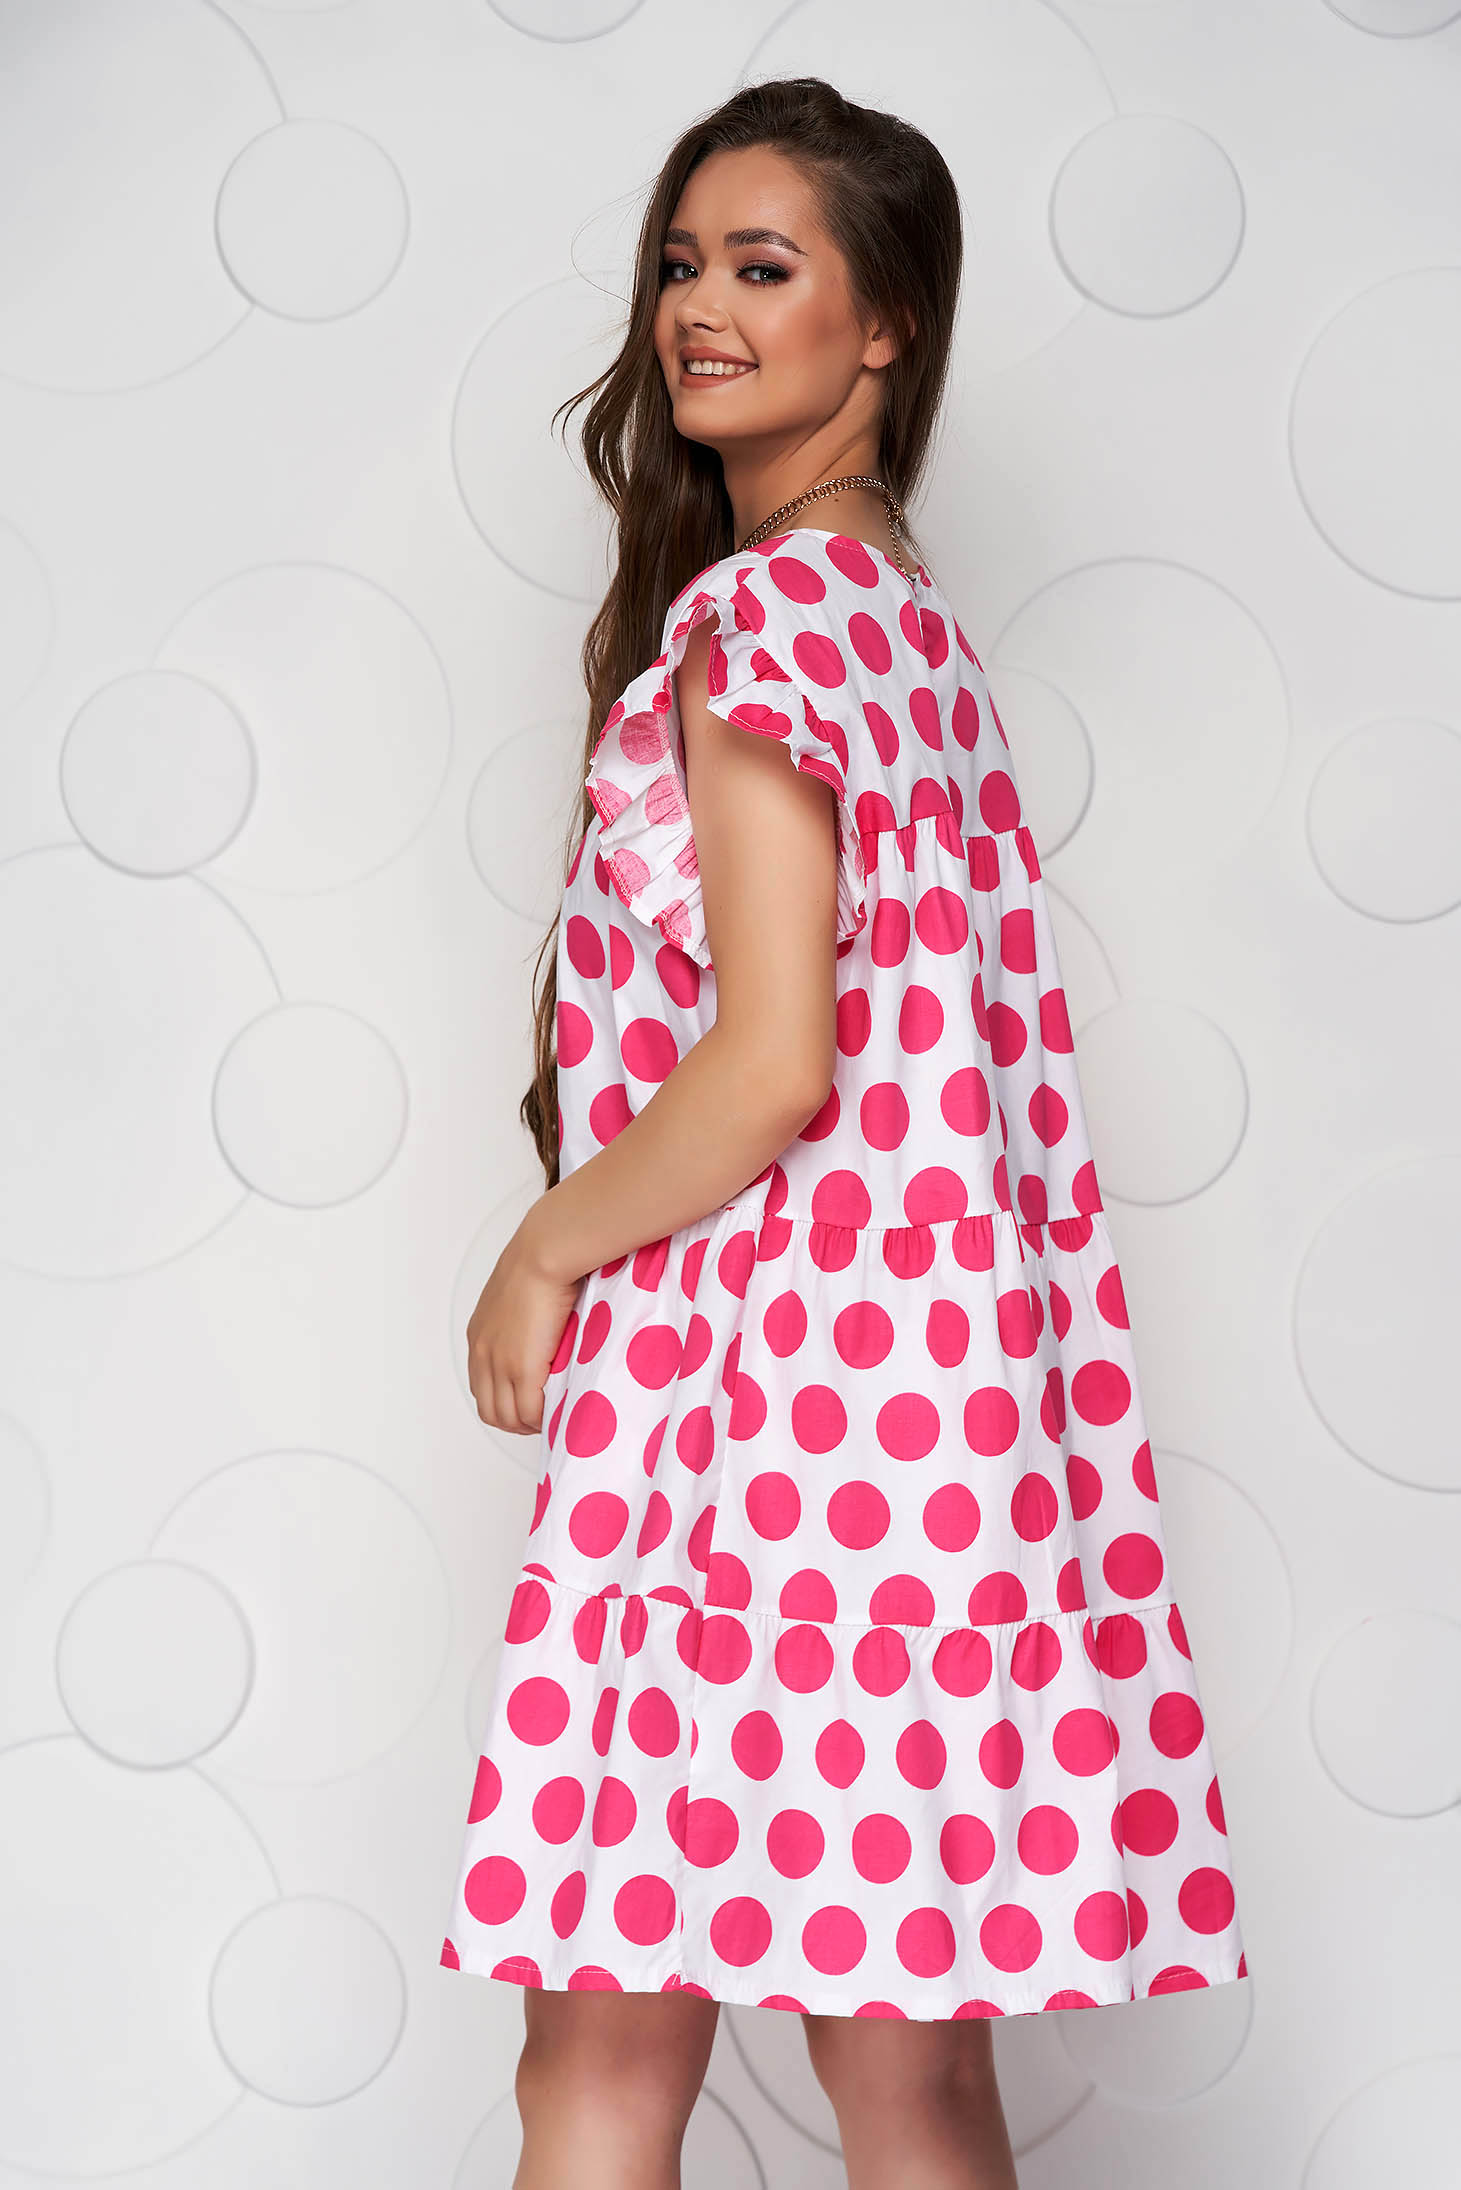 Pink dress dots print loose fit with ruffle details short cut poplin, thin cotton